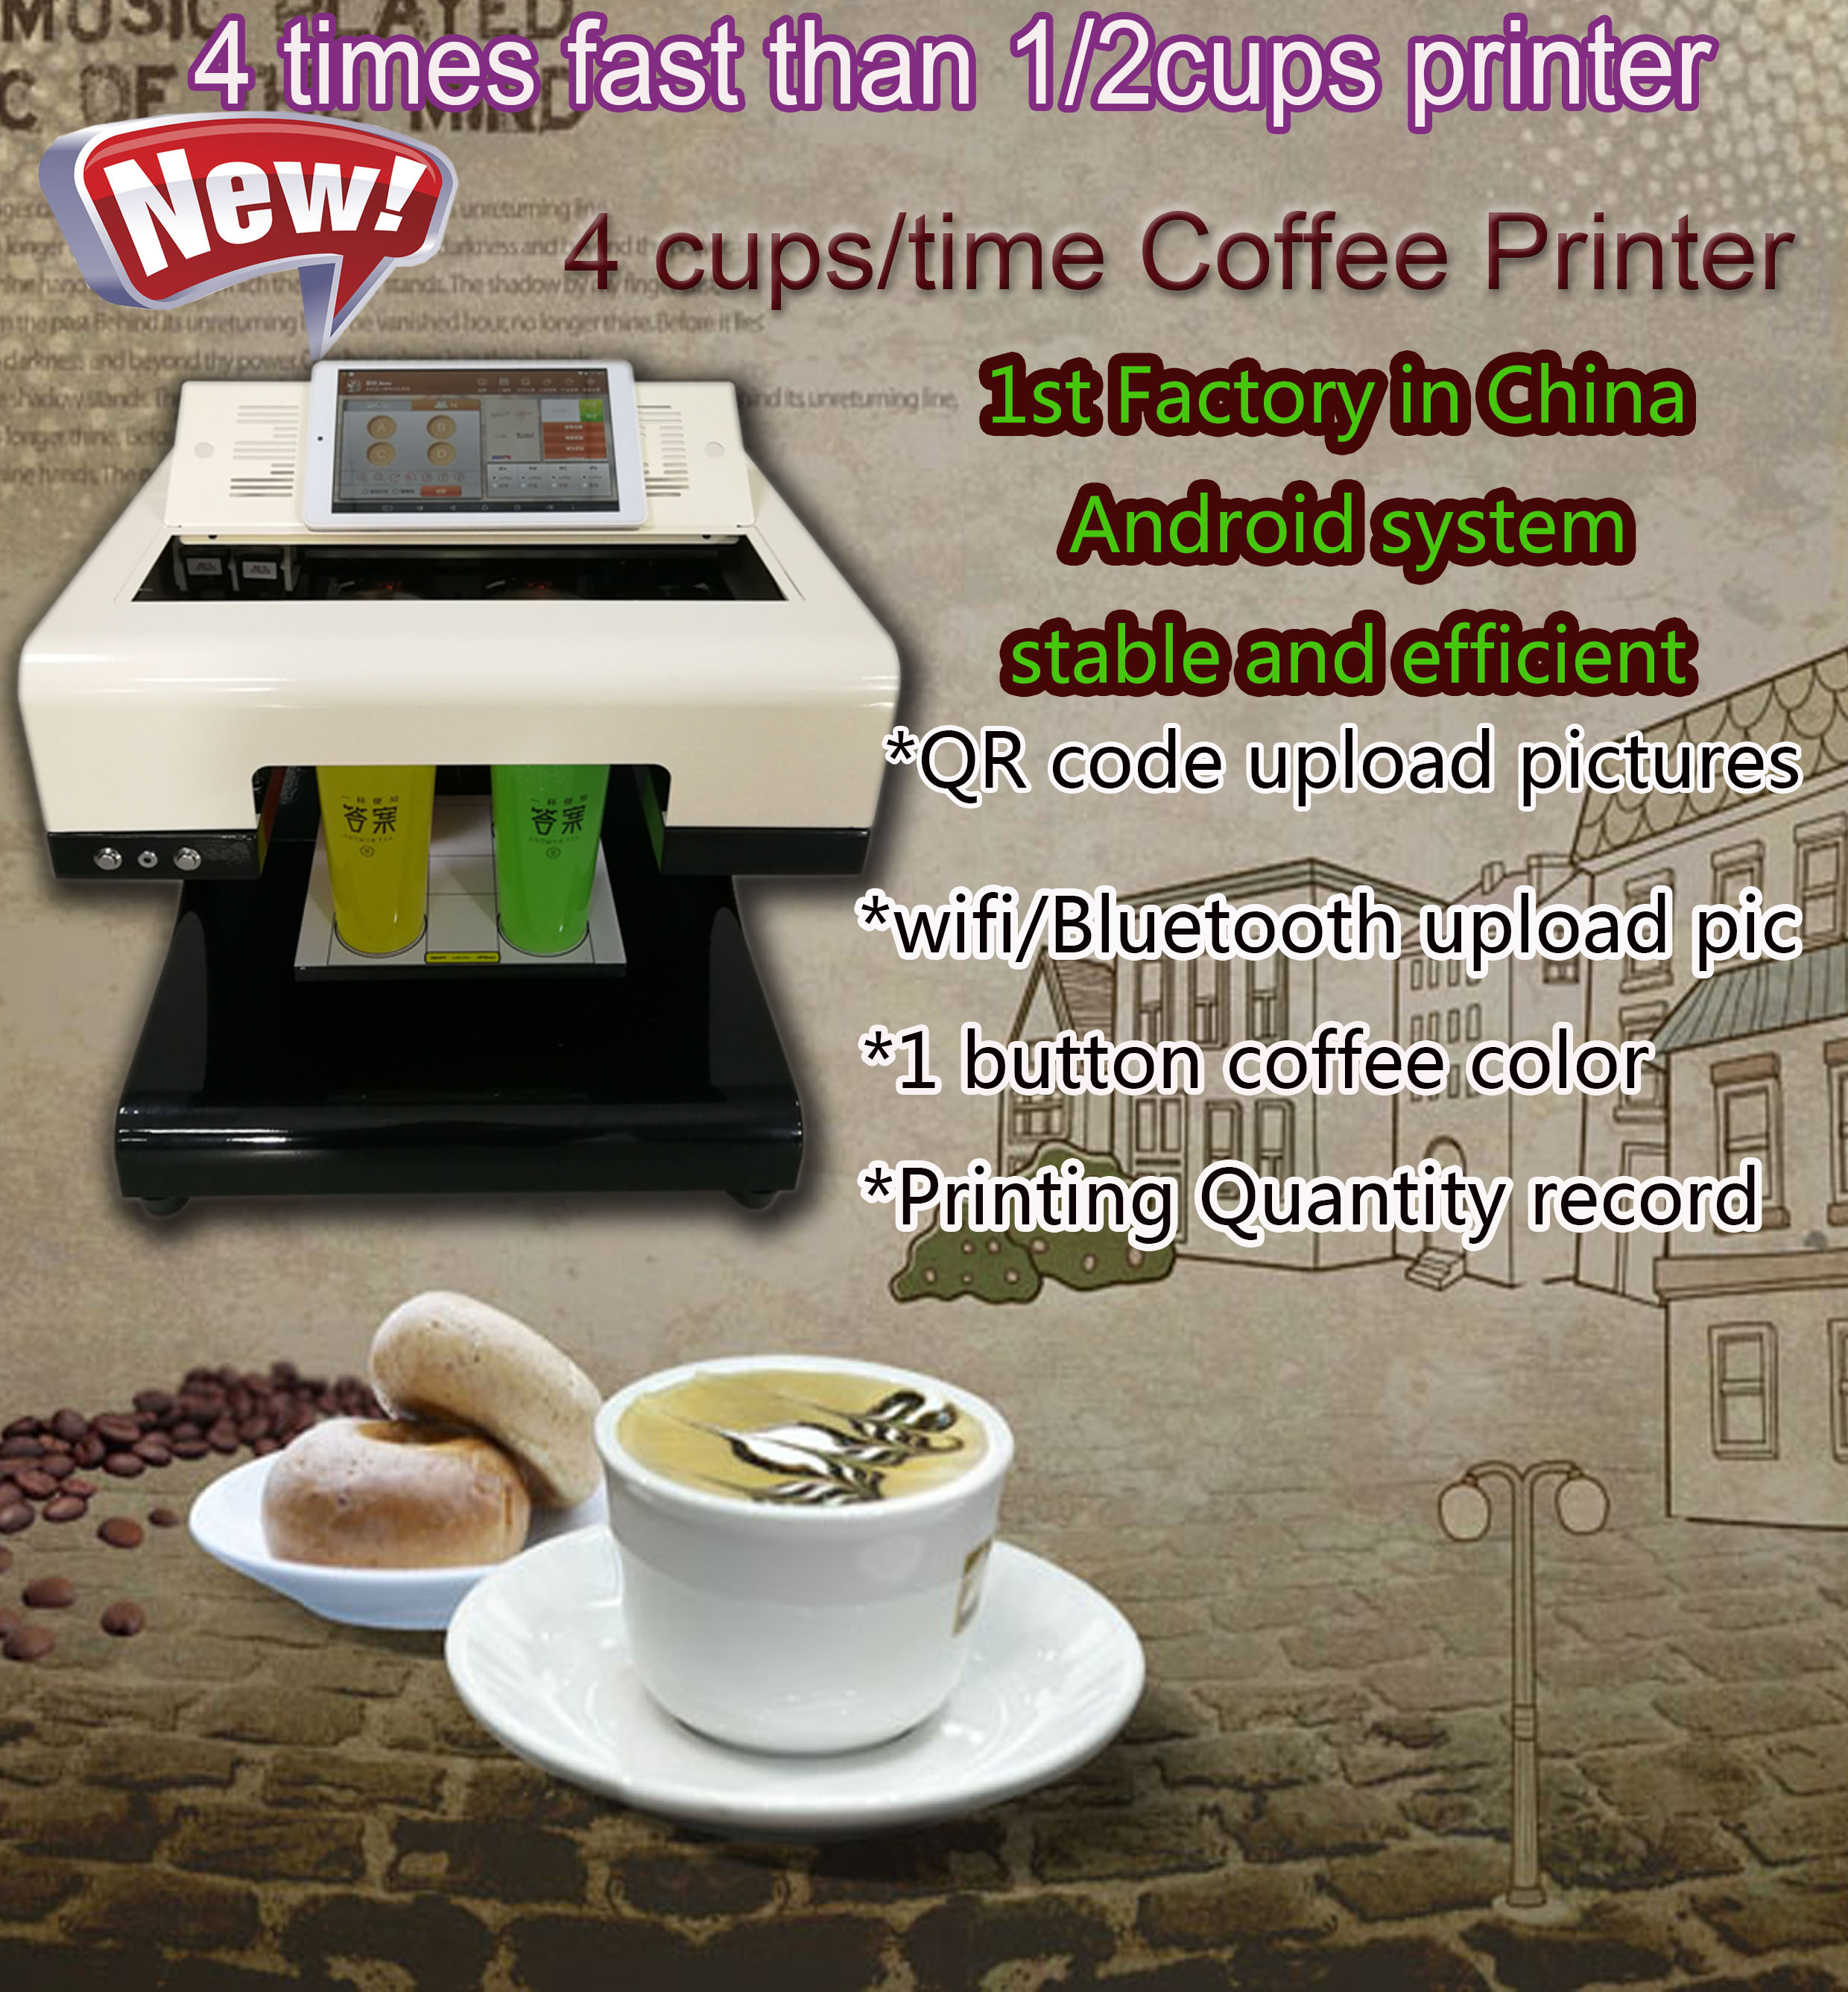 2018 Hot Sale Cappuccino 3d Let's Edible Cake Selfie Latte Art Printing Machine Coffee Printer Face Machine Price